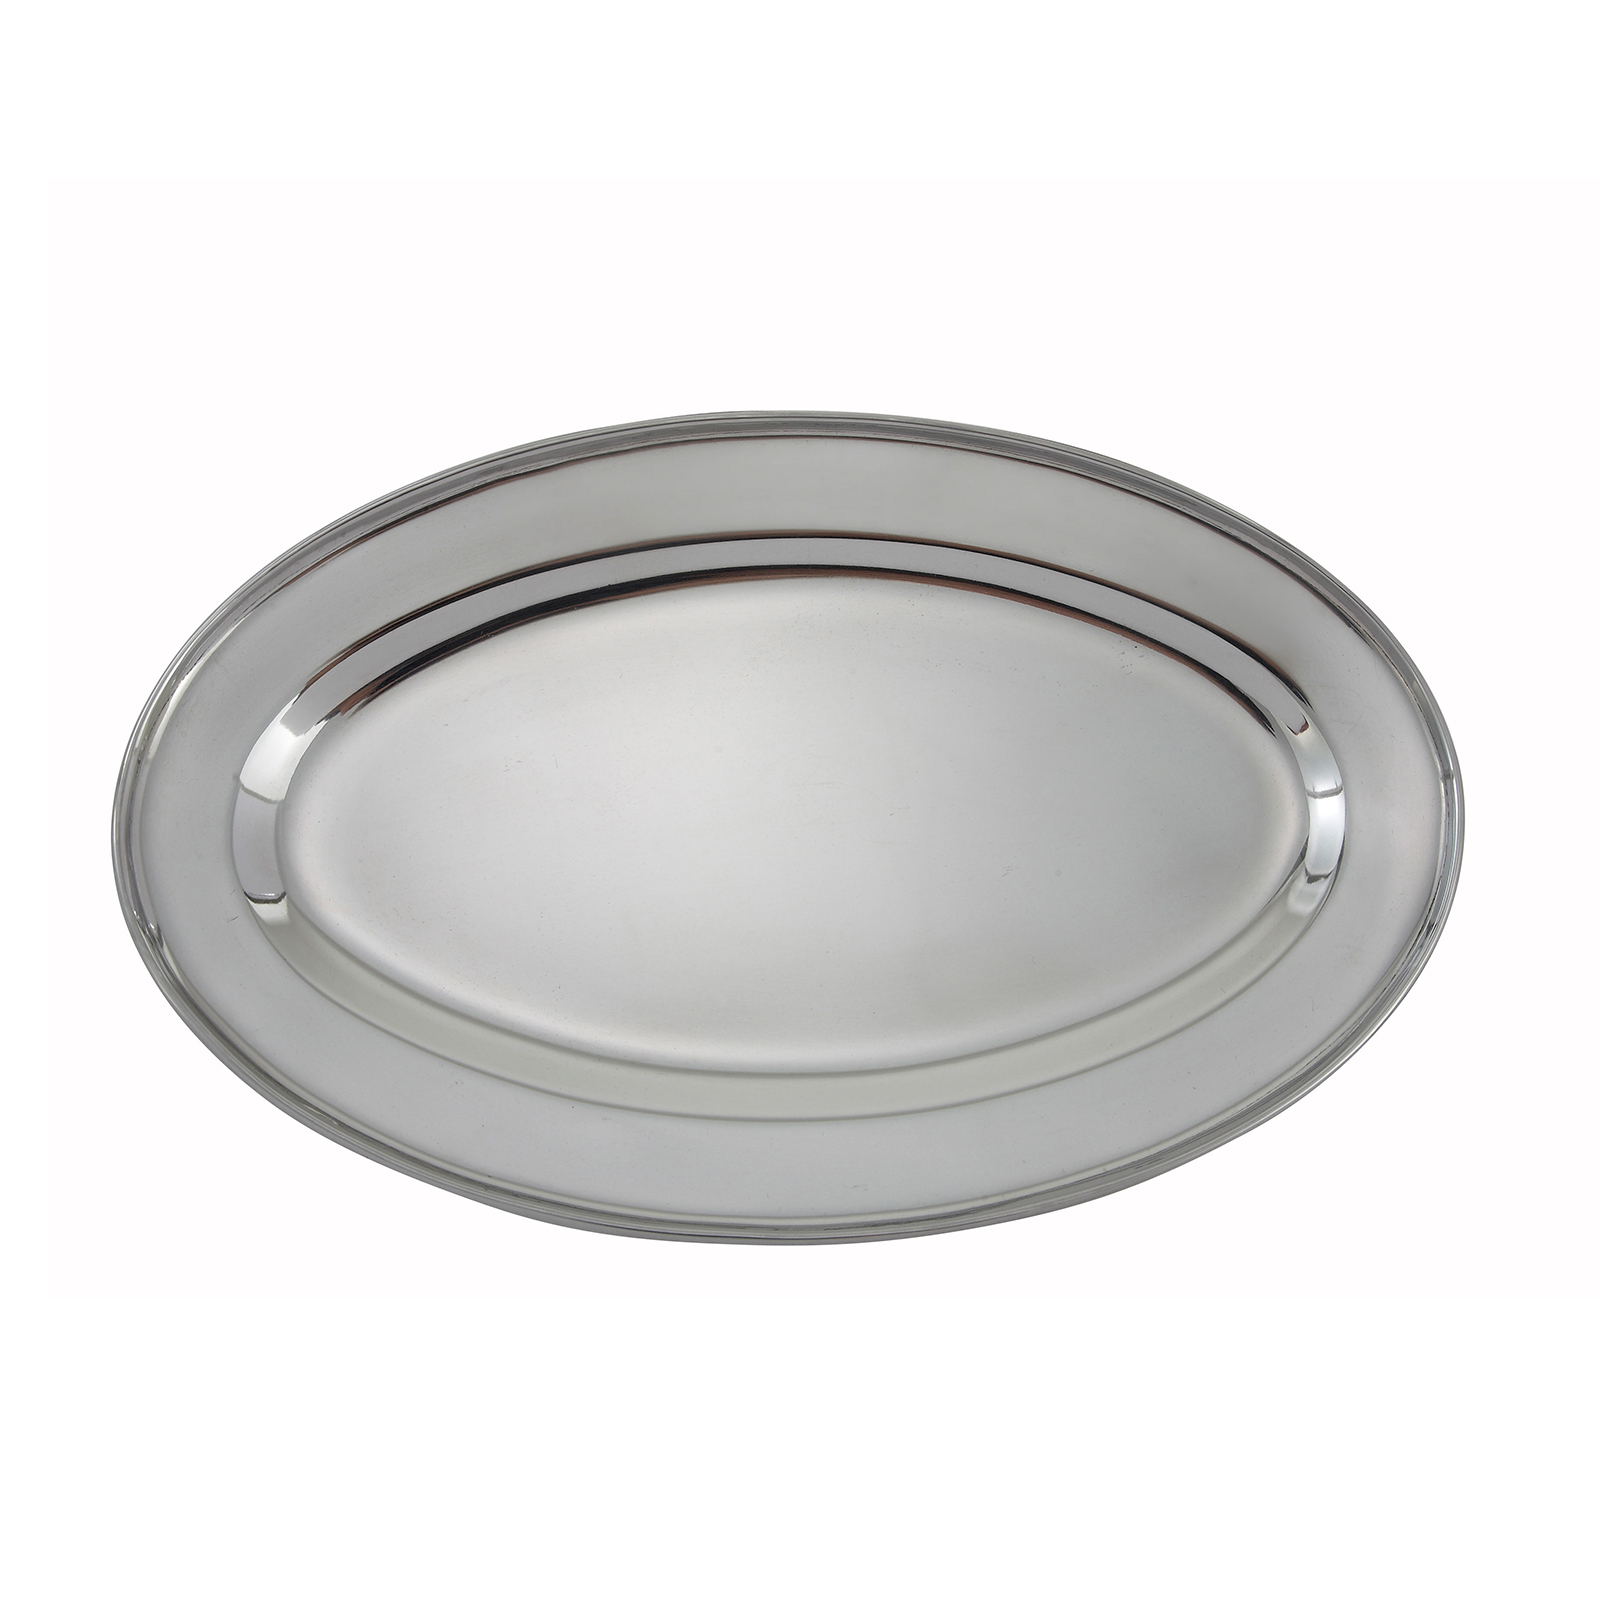 Winco OPL-12 platter, stainless steel